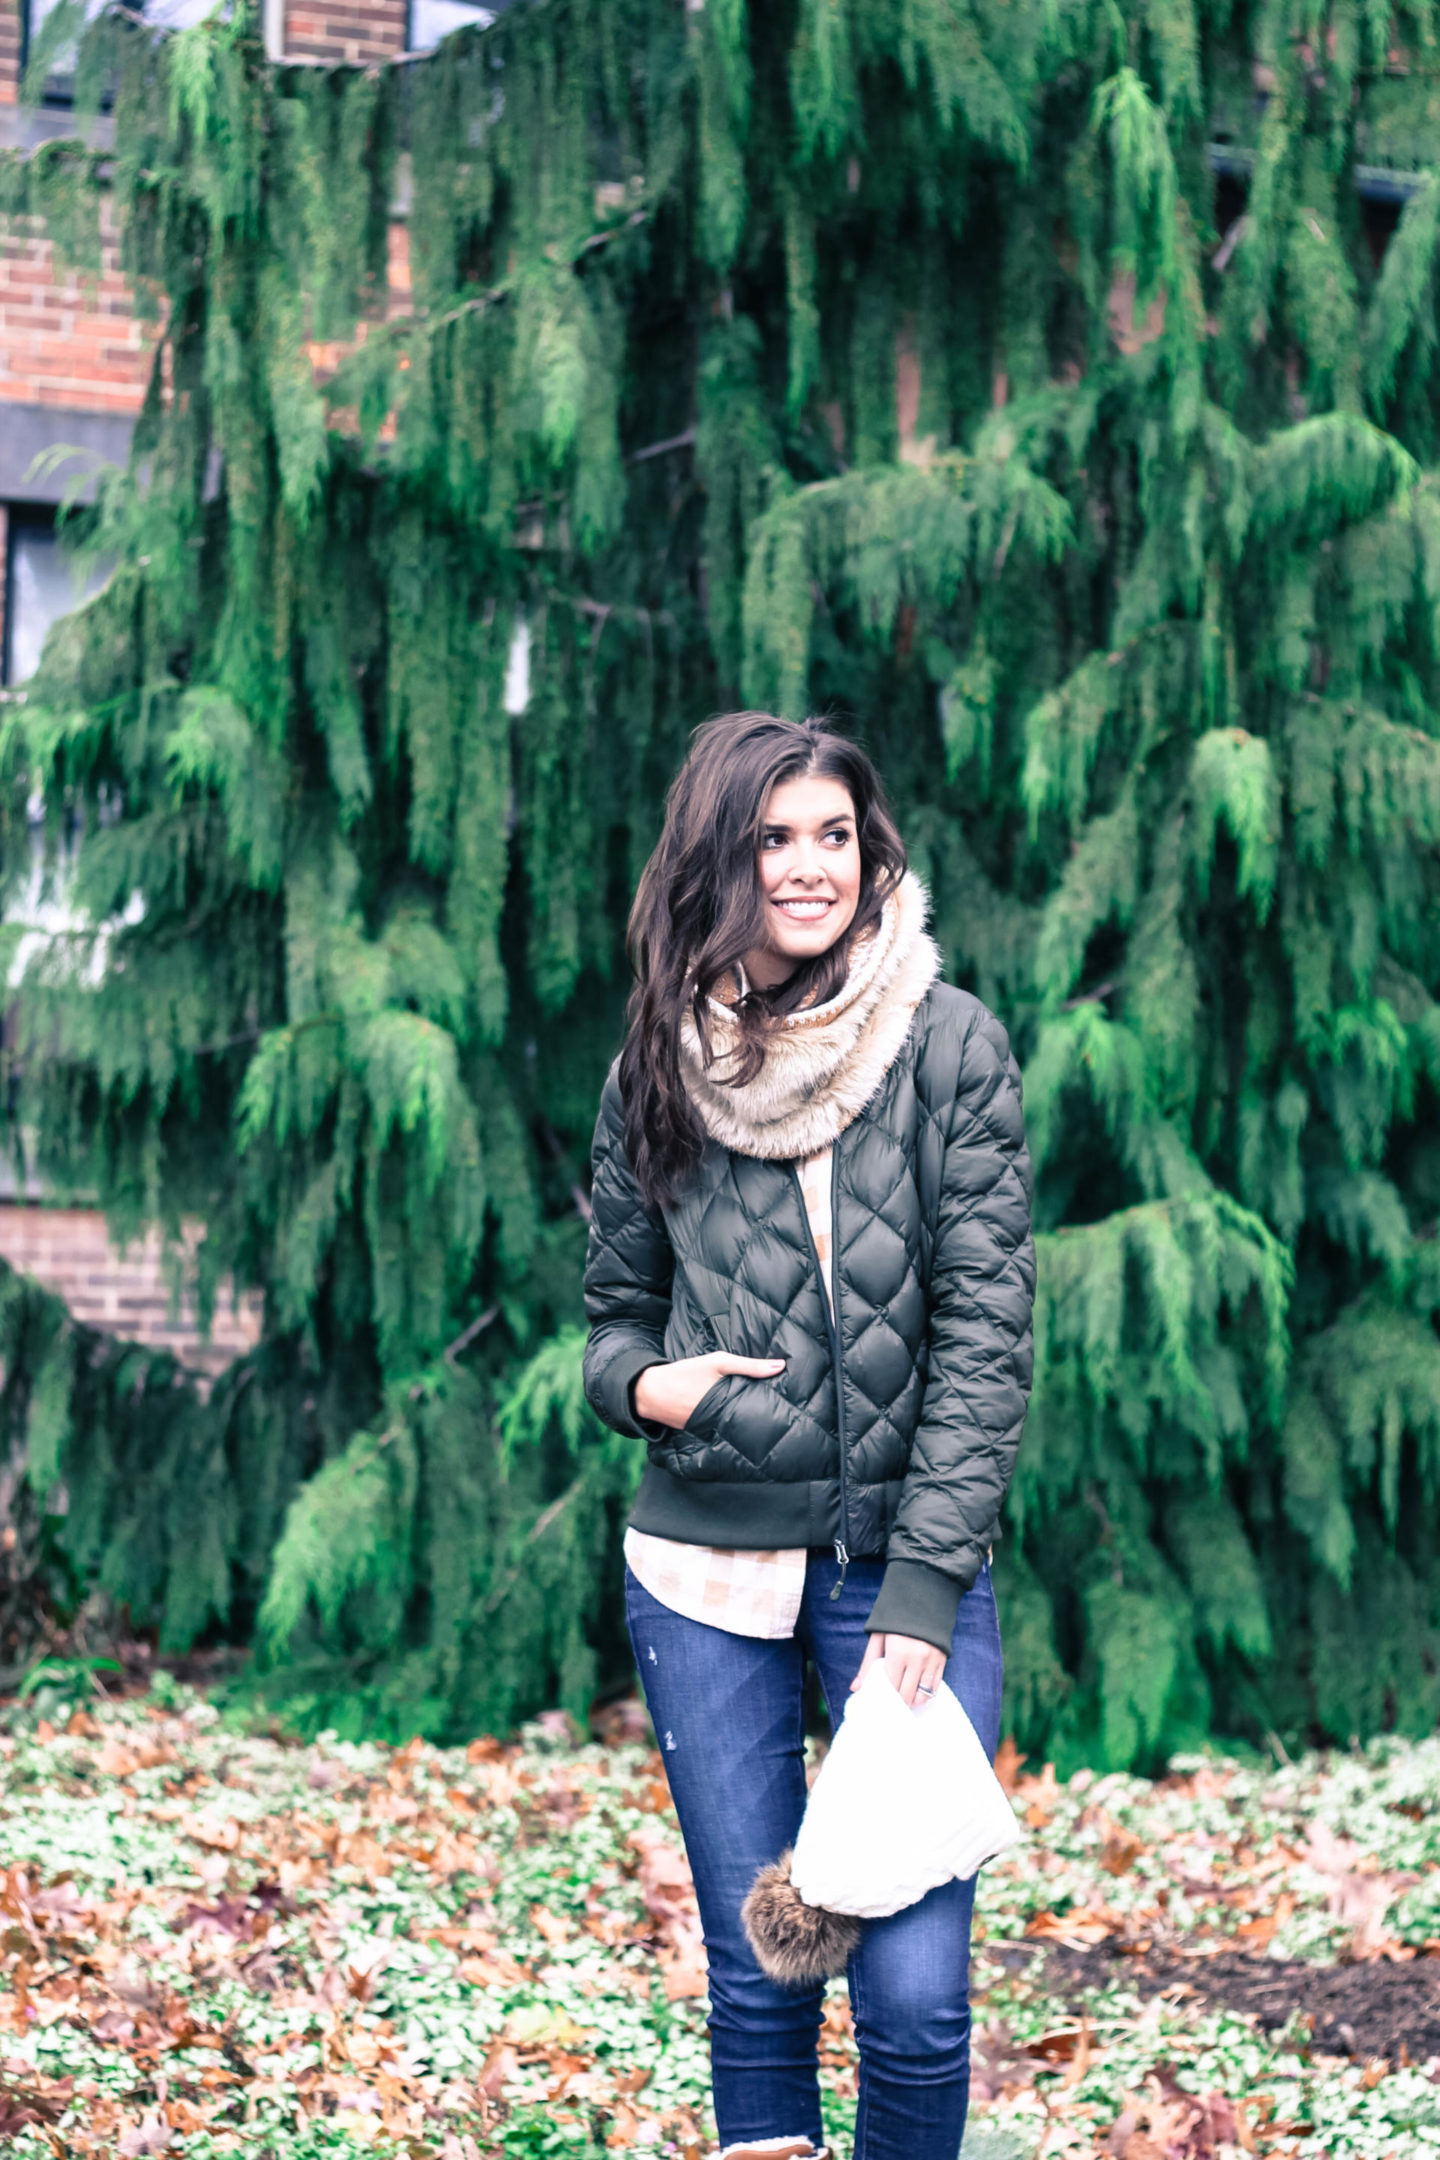 Winter Fashion For Dummies: Essentials To Survive Cold Weather